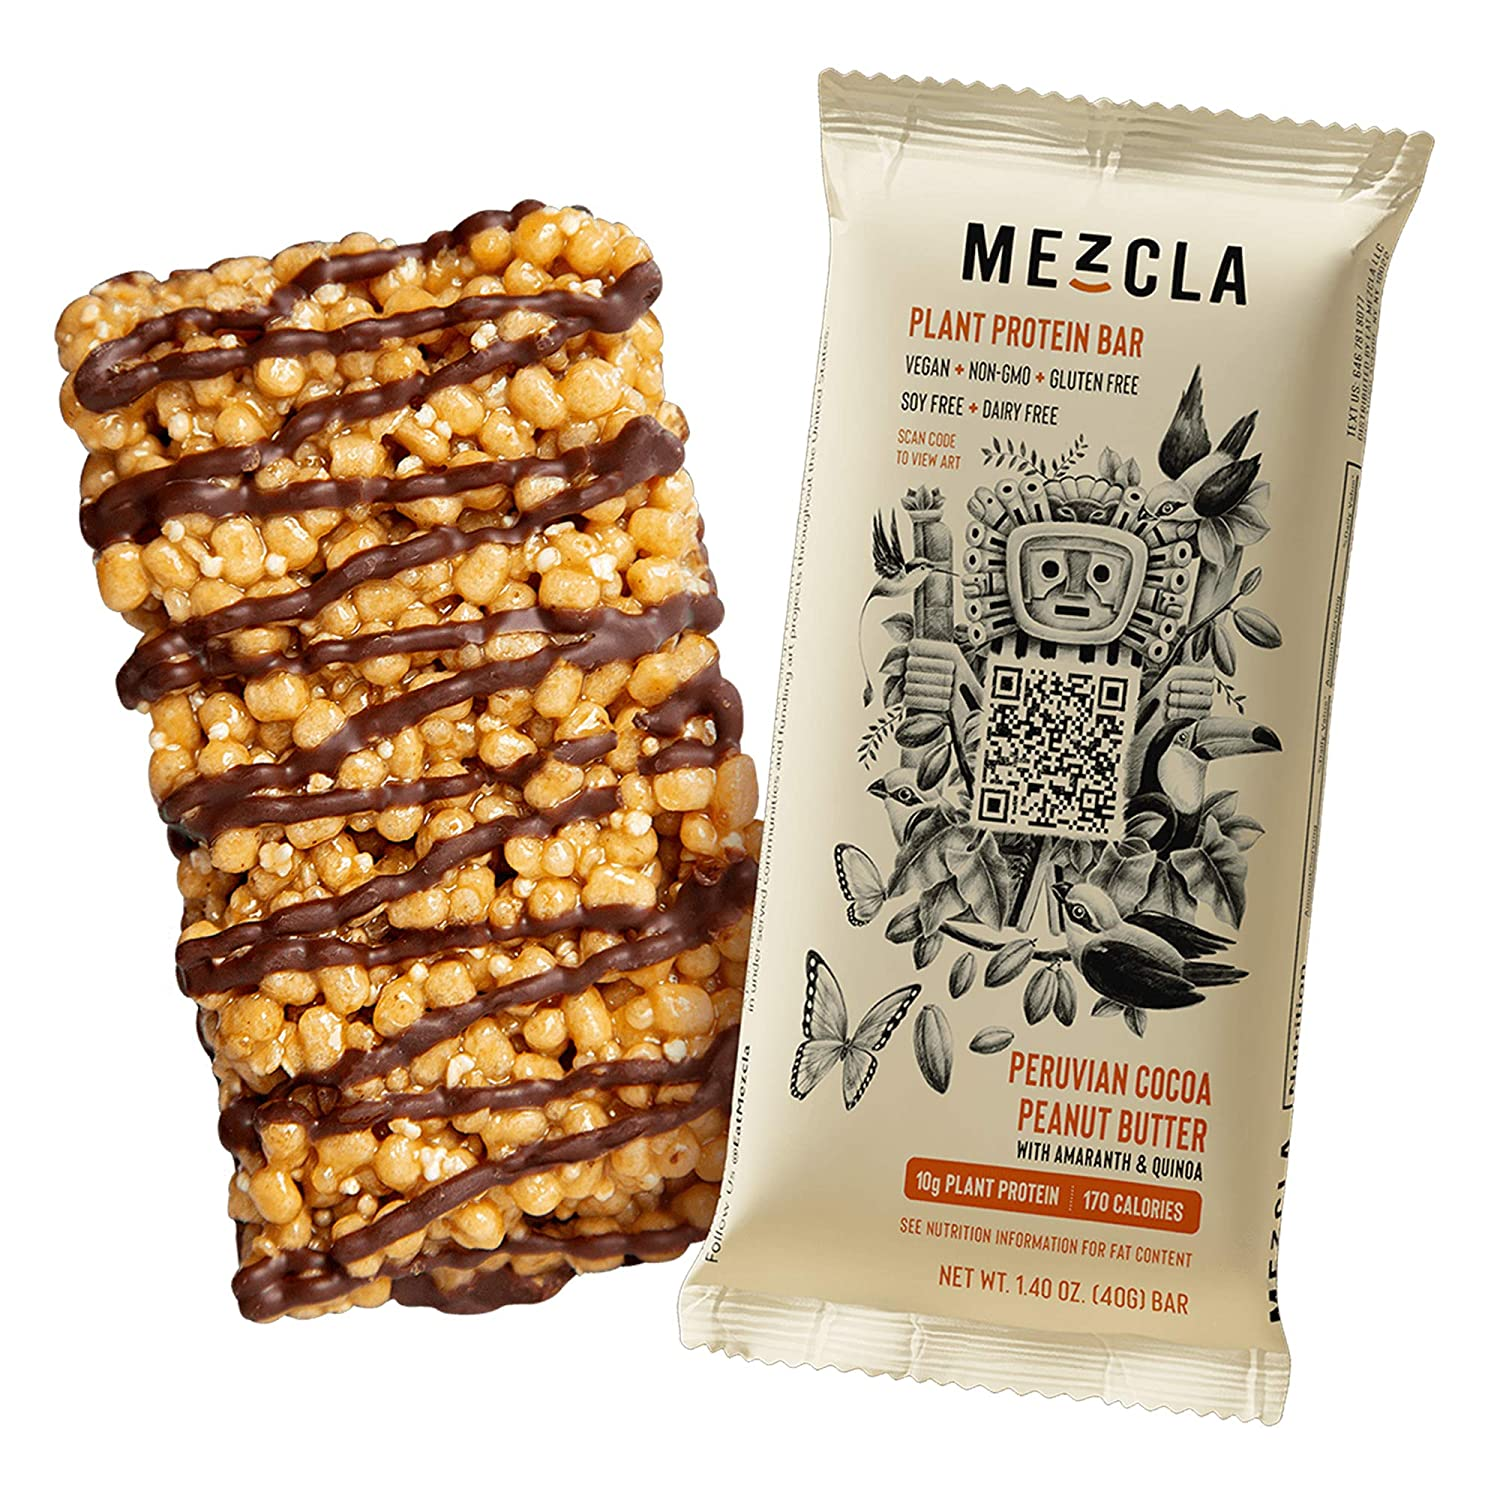 Mezcla Vegan Plant Protein Bars - Peruvian Cocoa PB: Premium Ingredients, Delicious Flavor, 10G of Protein, Gluten-Free, Non-GMO, Soy Free [8-Pack]